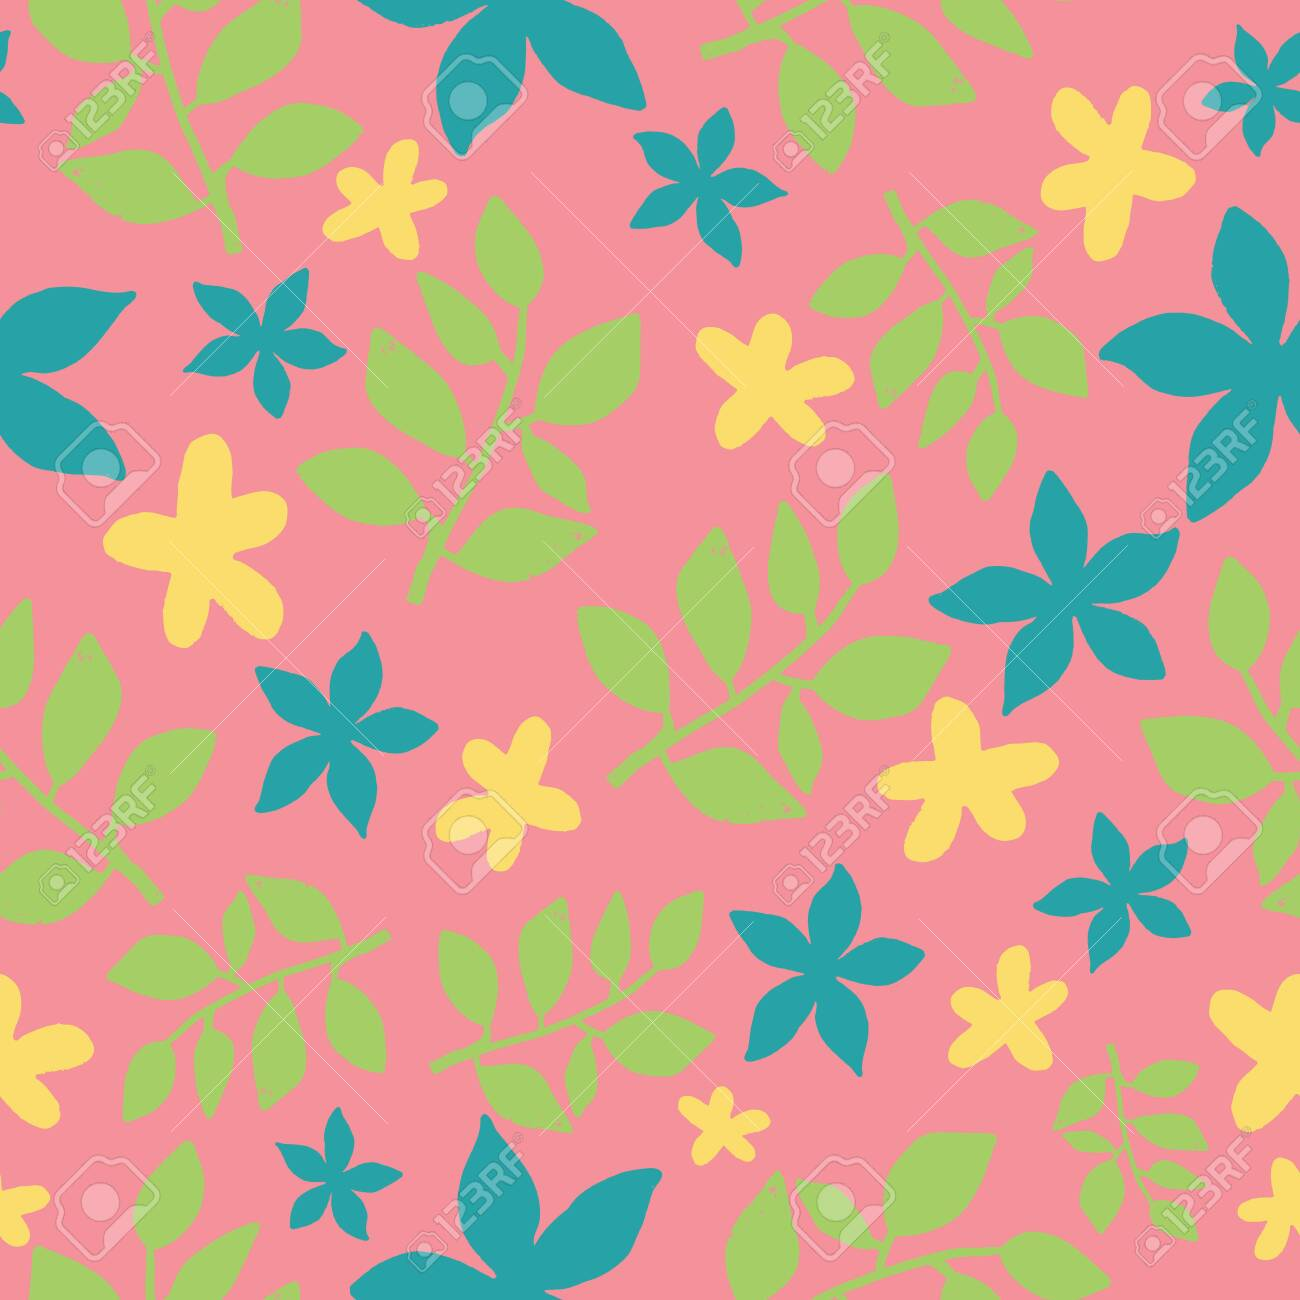 Seamless Tropical Leaves Repeat Pattern Design On Pink Background Stock Photo Picture And Royalty Free Image Image 133893743